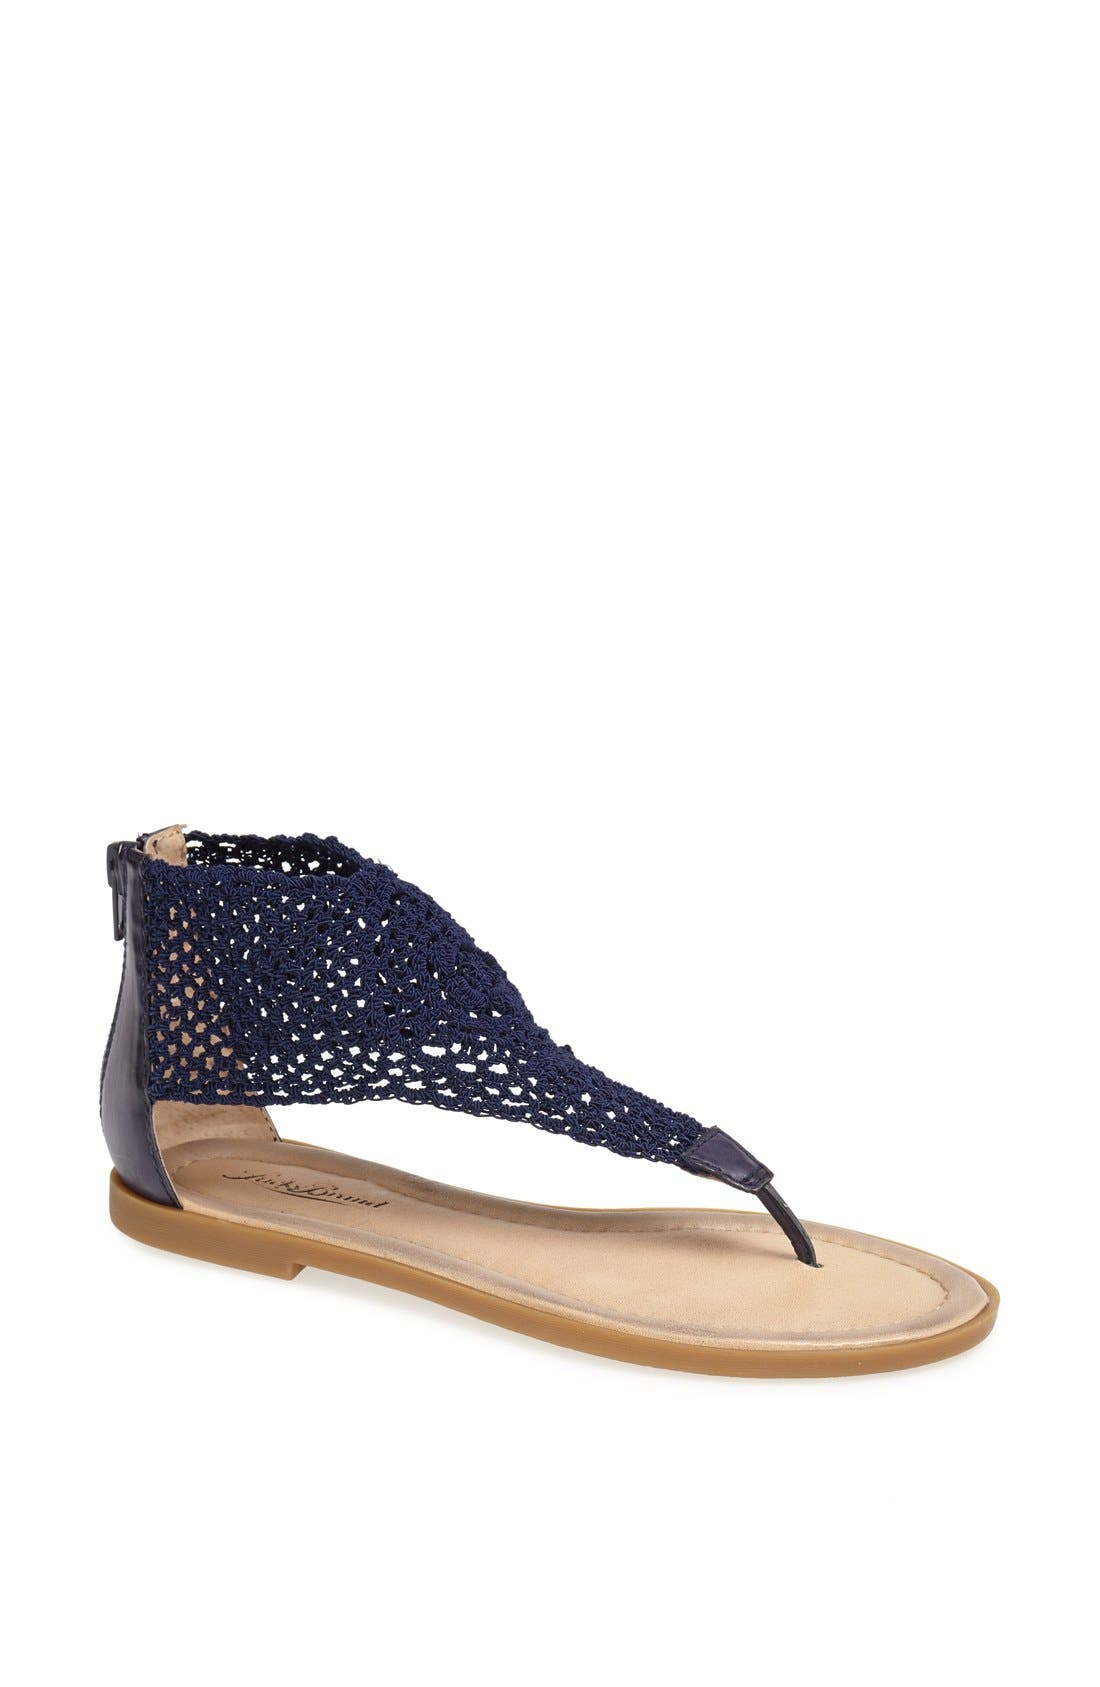 Main Image - Lucky Brand 'Cropley' Crochet Sandal